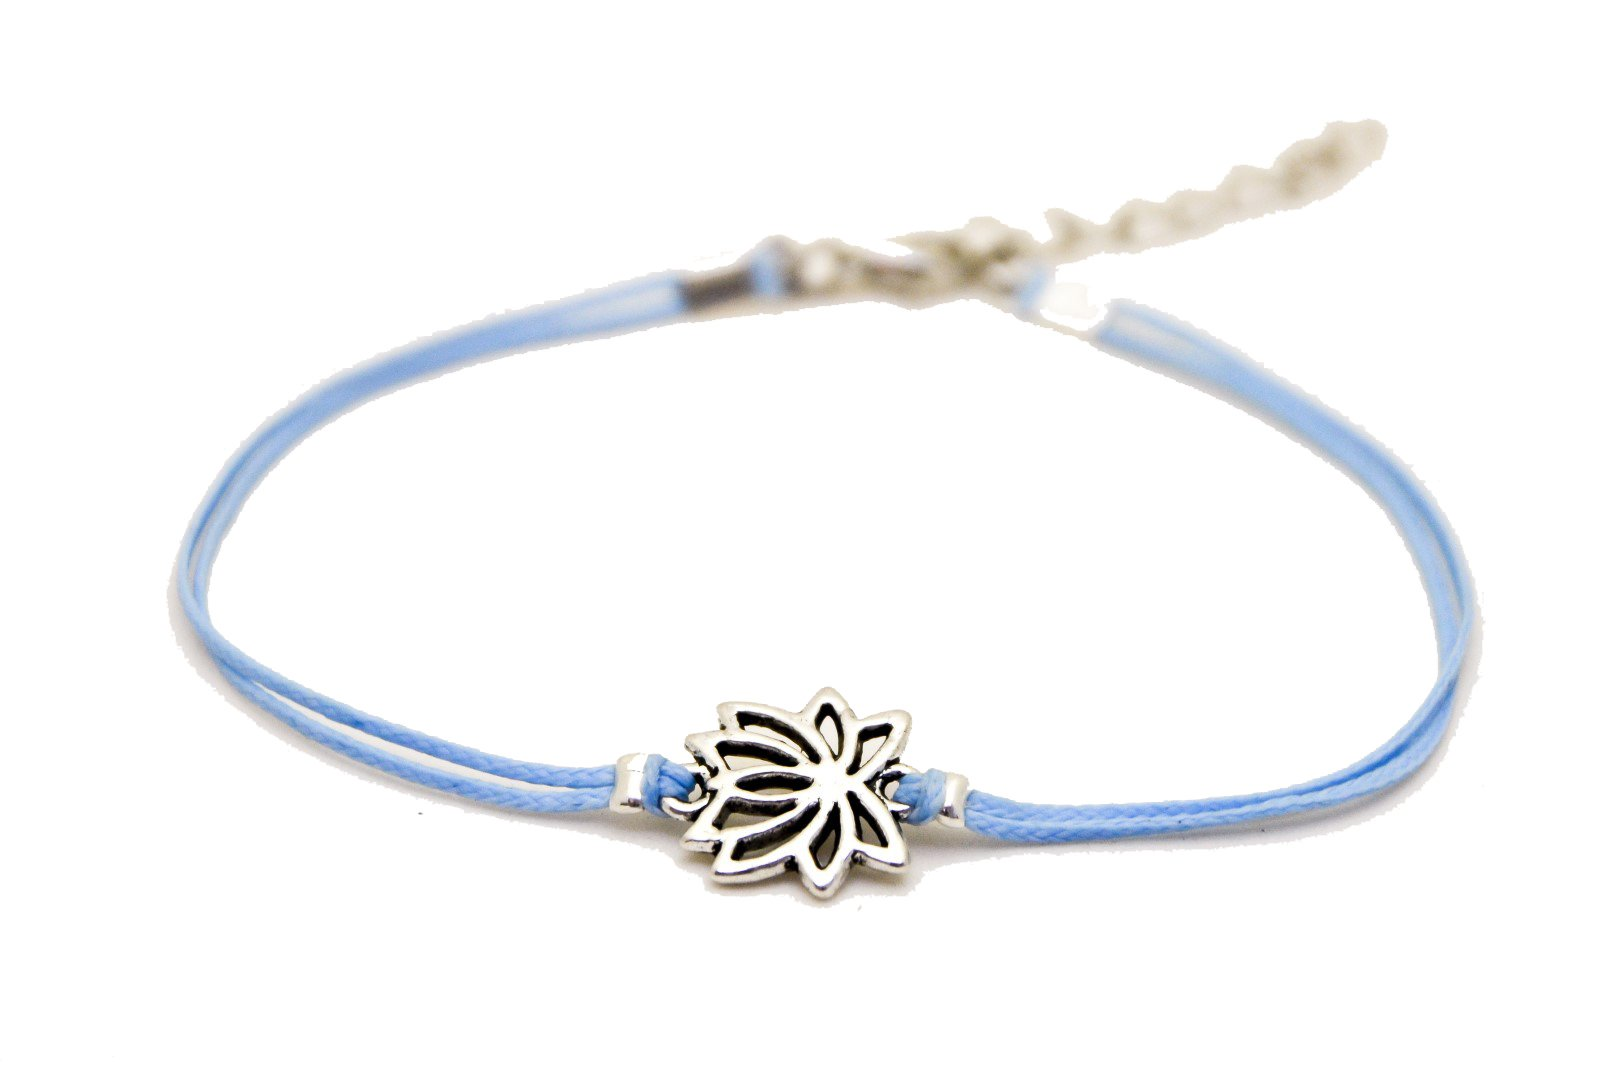 Lotus anklet, blue ankle bracelet with silver lotus charm, buddhist symbol, blue cord, zen, flower, yoga bracelet, spiritual jewelry, flower